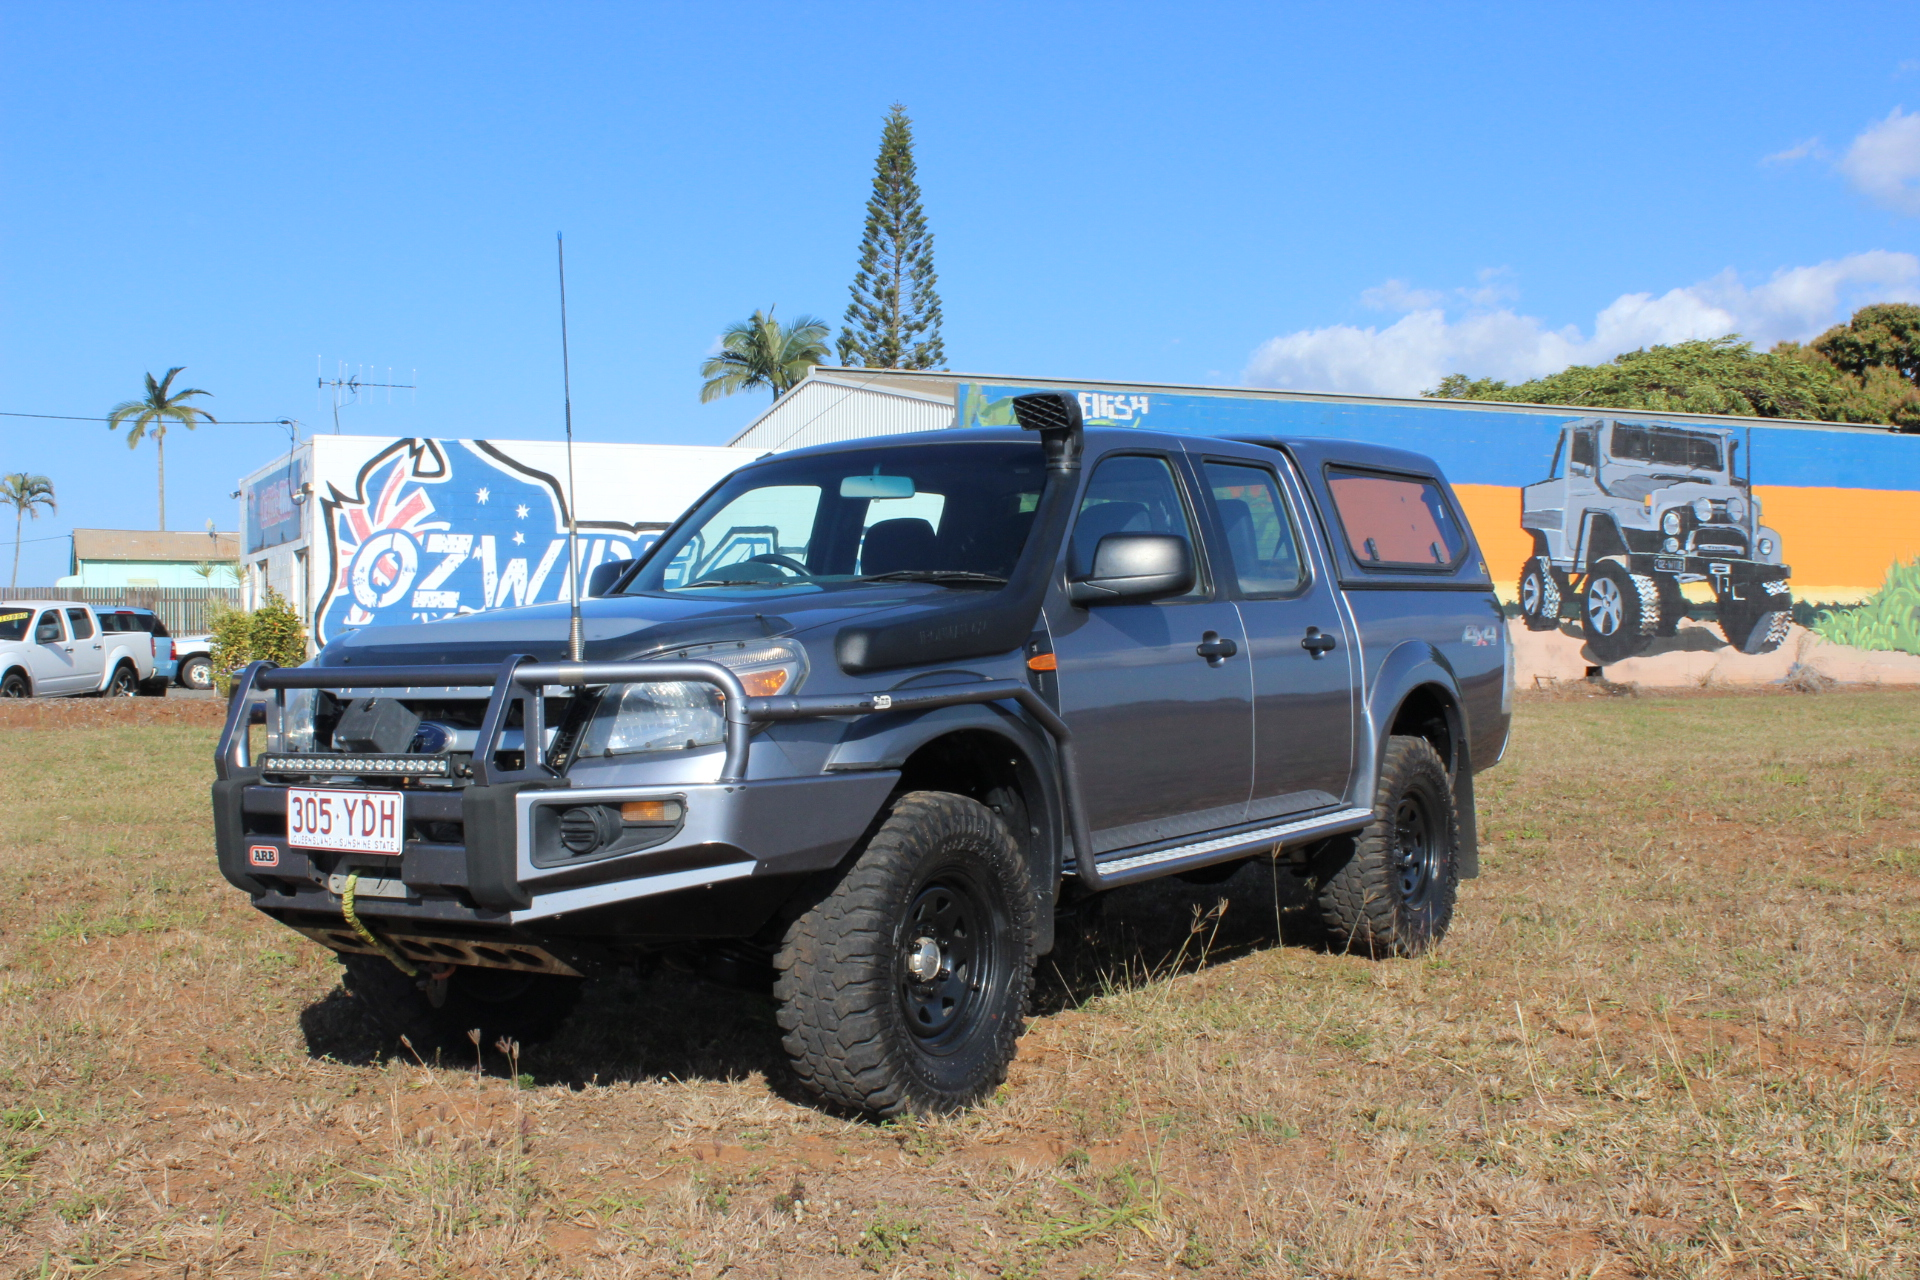 Ozwide4wd 4x4 S Mechanical Amp Auto Electrical Work